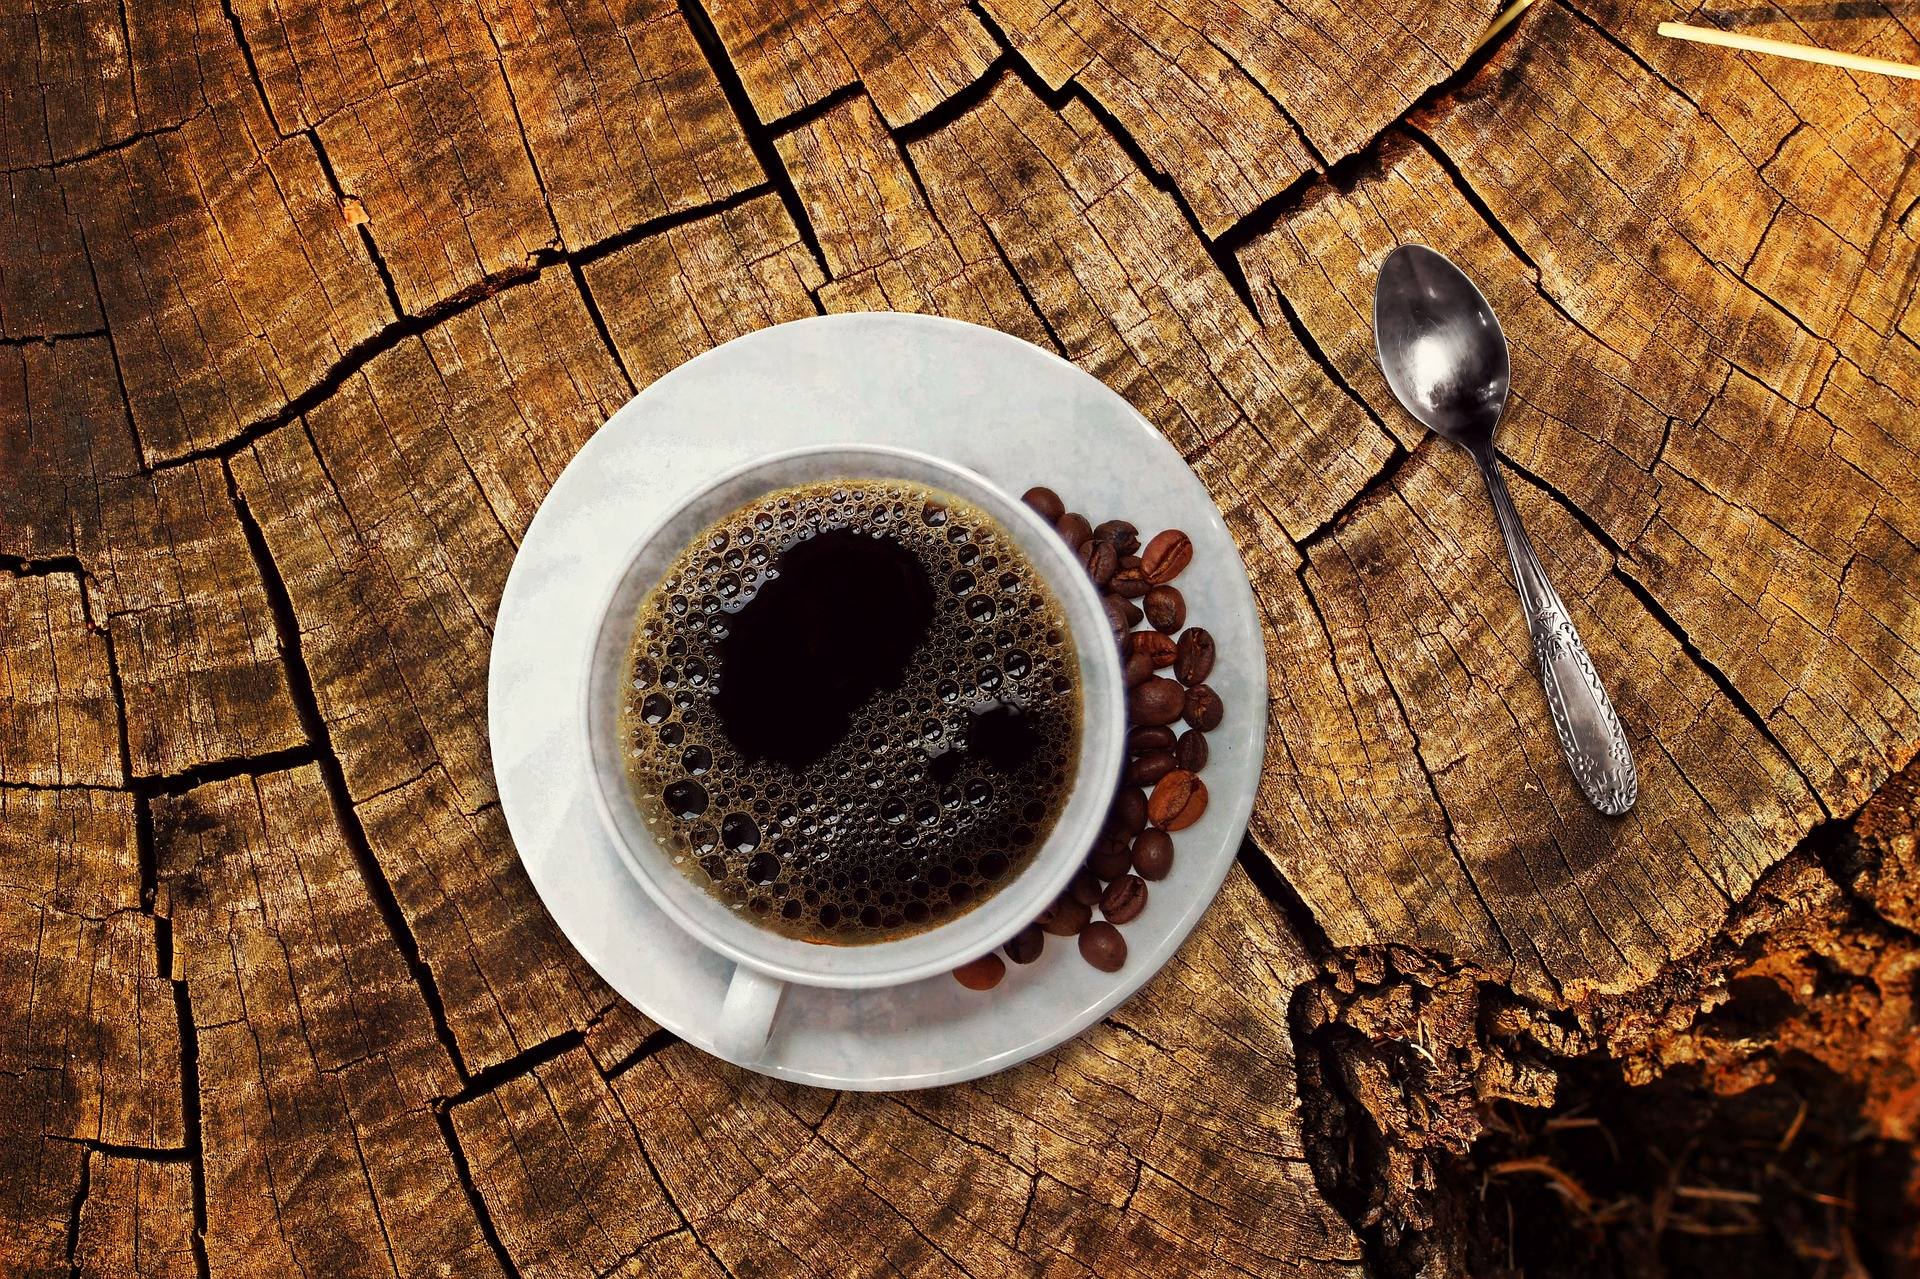 Picabay – Coffee cup